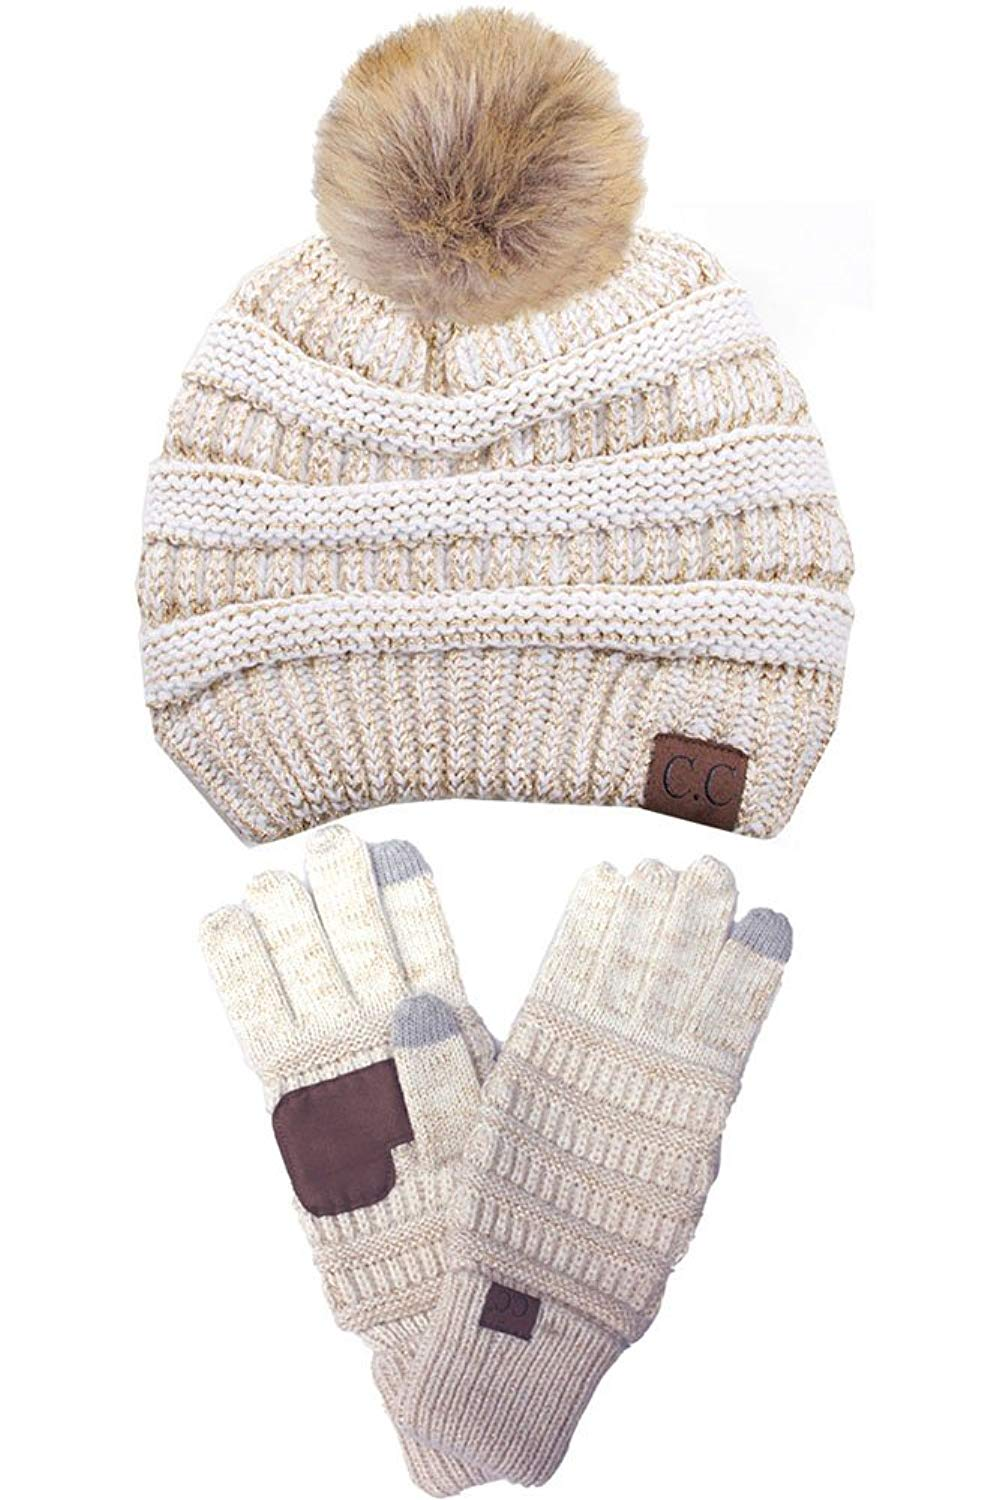 8570d2844e08b0 Get Quotations · ScarvesMe C.C Trendy Warm Soft Stretch Cable Knit Pom Pom  Beanie and Gloves SET